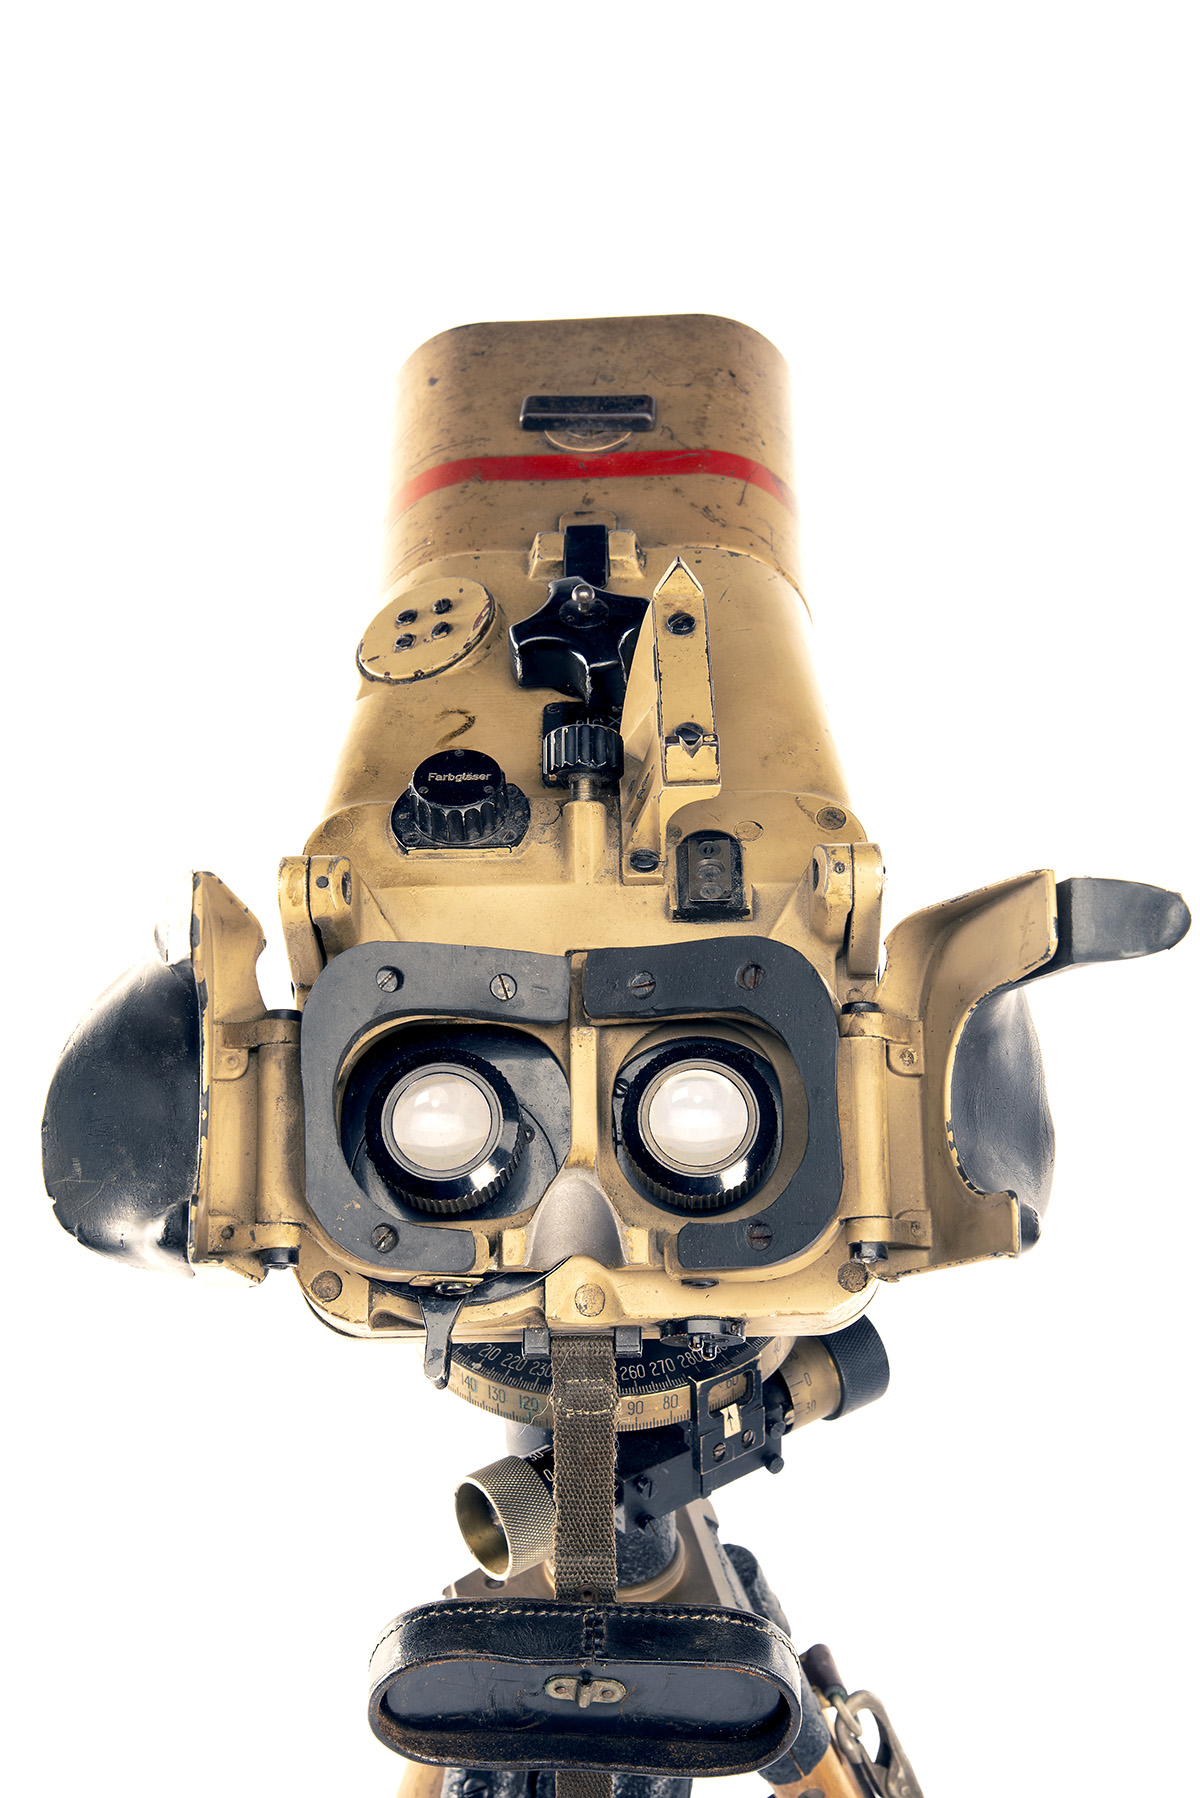 CARL ZEISS, JENA A RARE PAIR OF 12x60 INCLINED FLAK RANGING BINOCULARS WITH TRIPOD, serial no. - Image 4 of 7